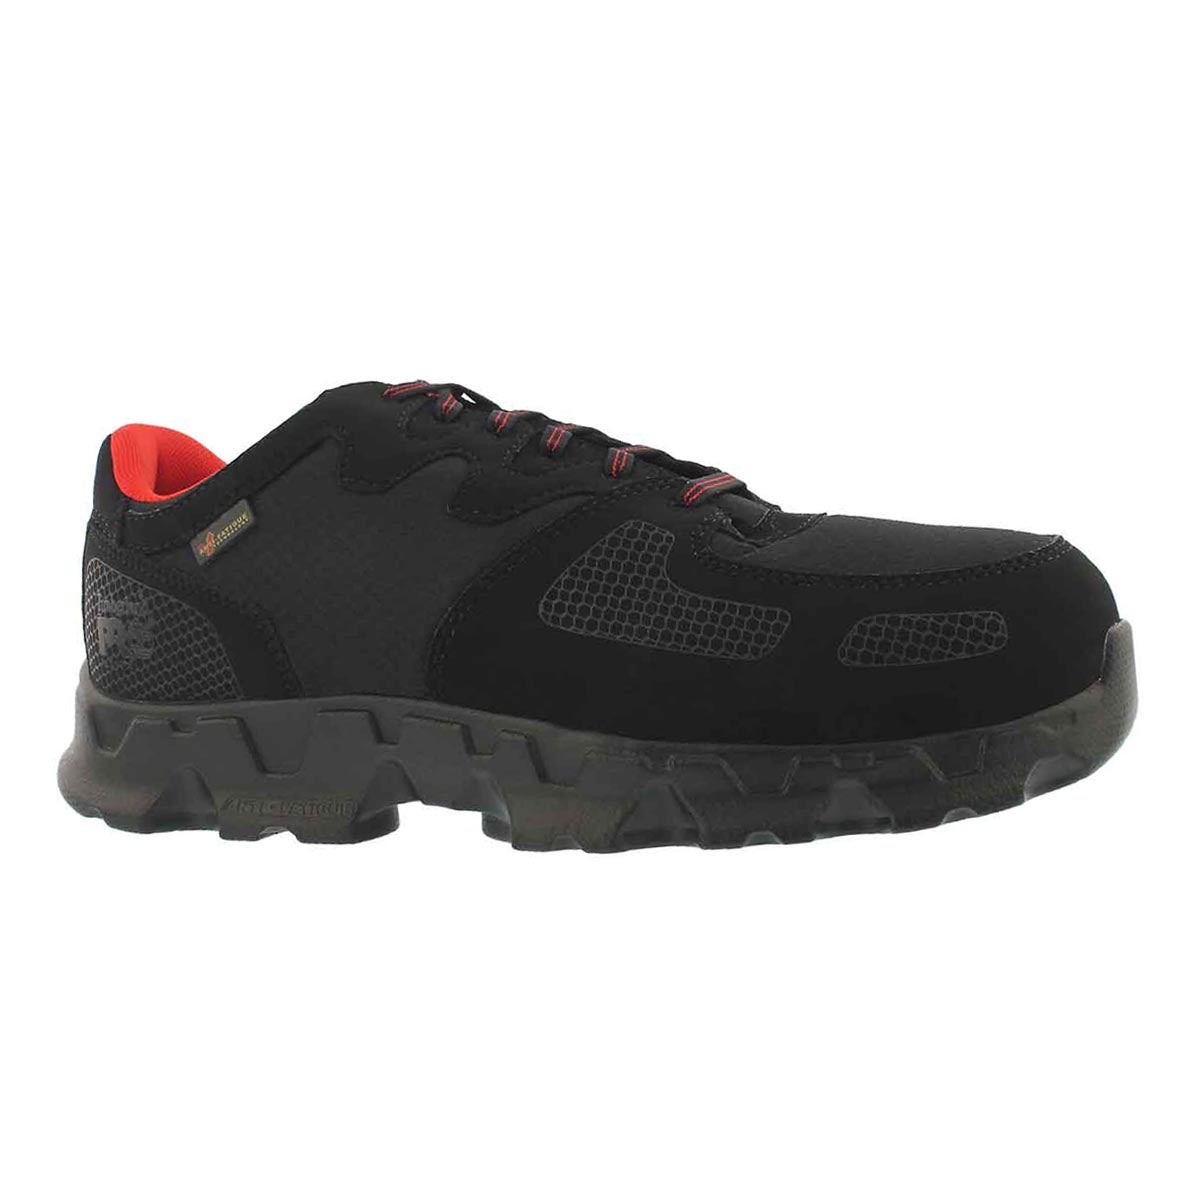 Men's POWERTRAIN  black/red CSA sneakers